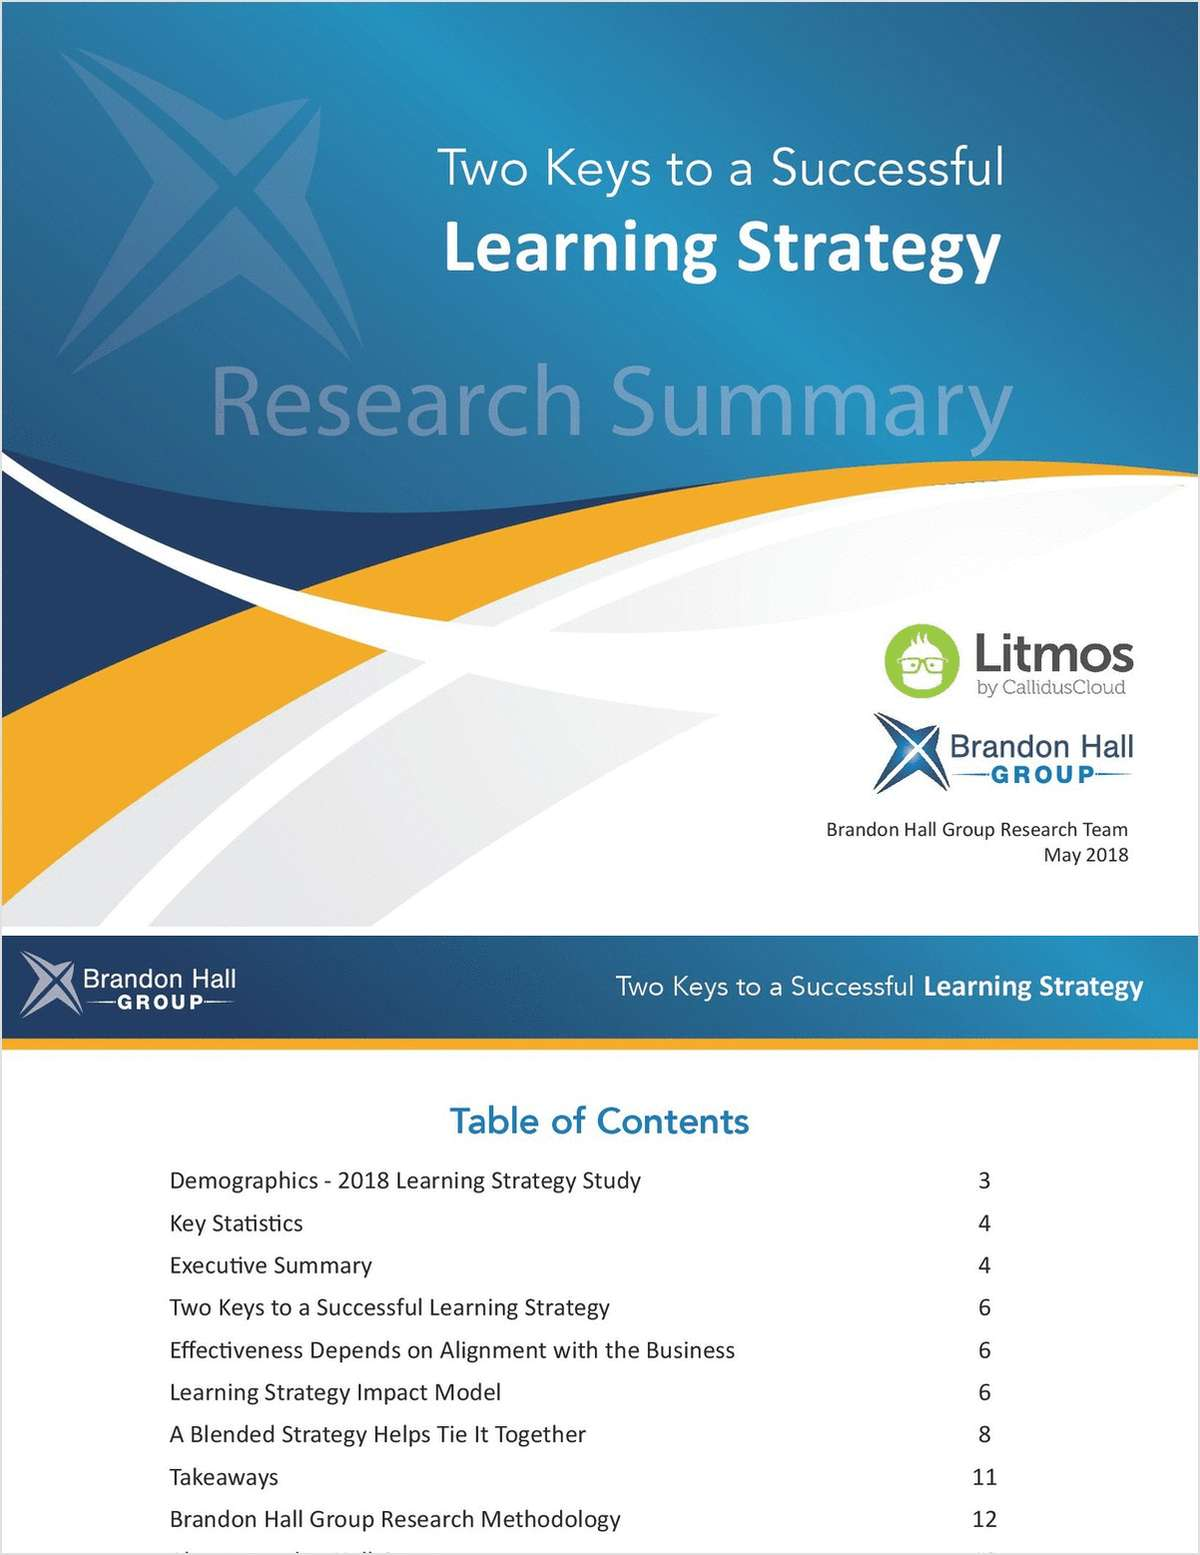 Two Keys to a Successful Learning Strategy